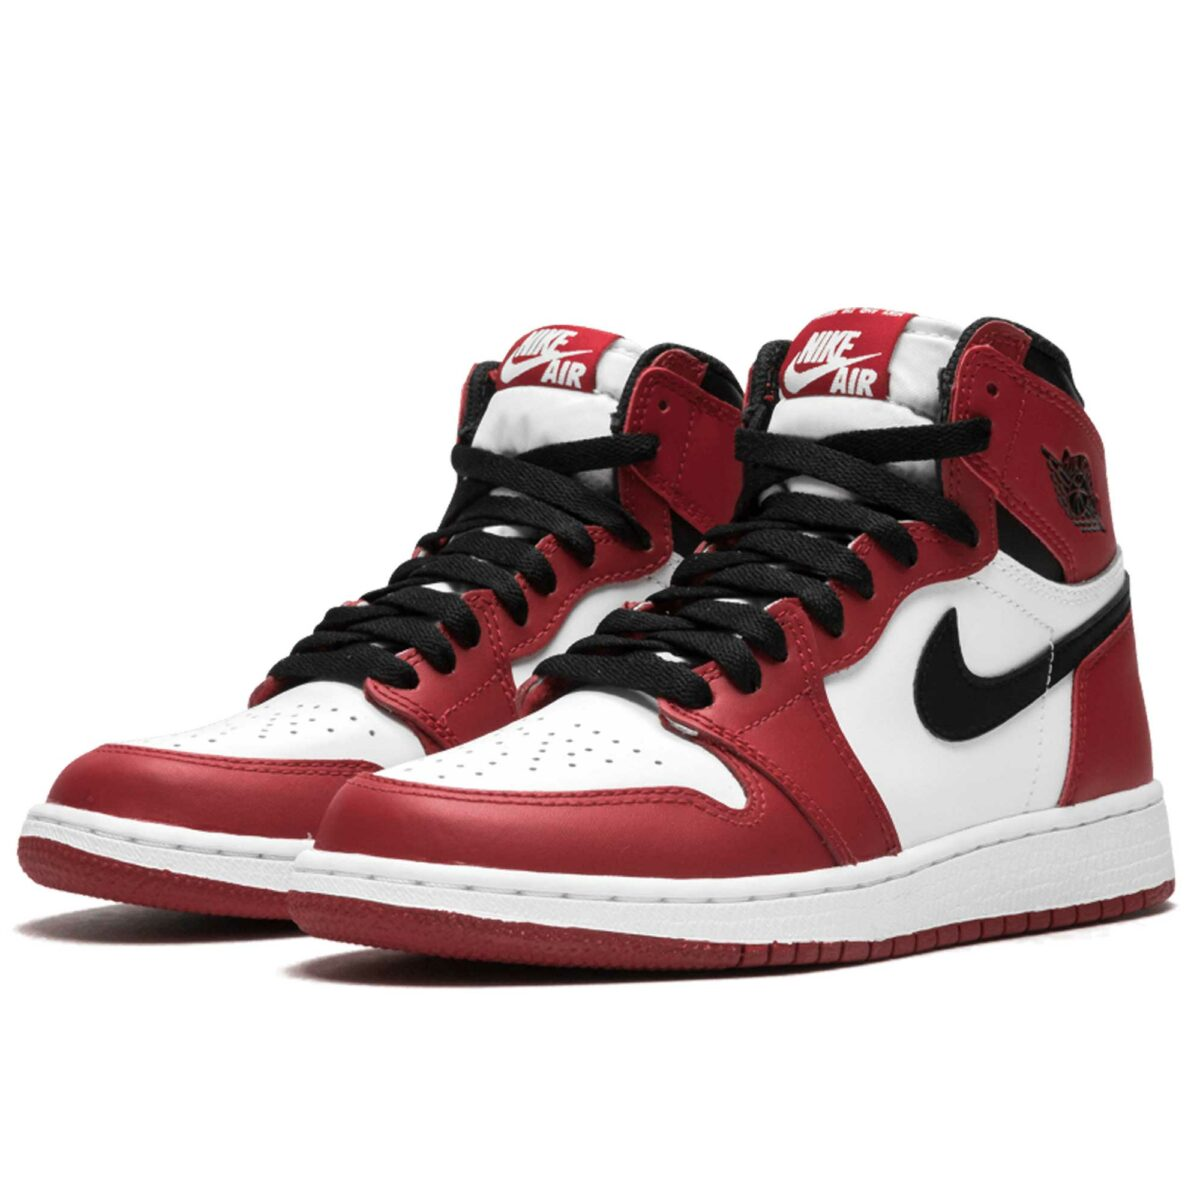 nike air Jordan 1 retro high og red white 575441_101 купить